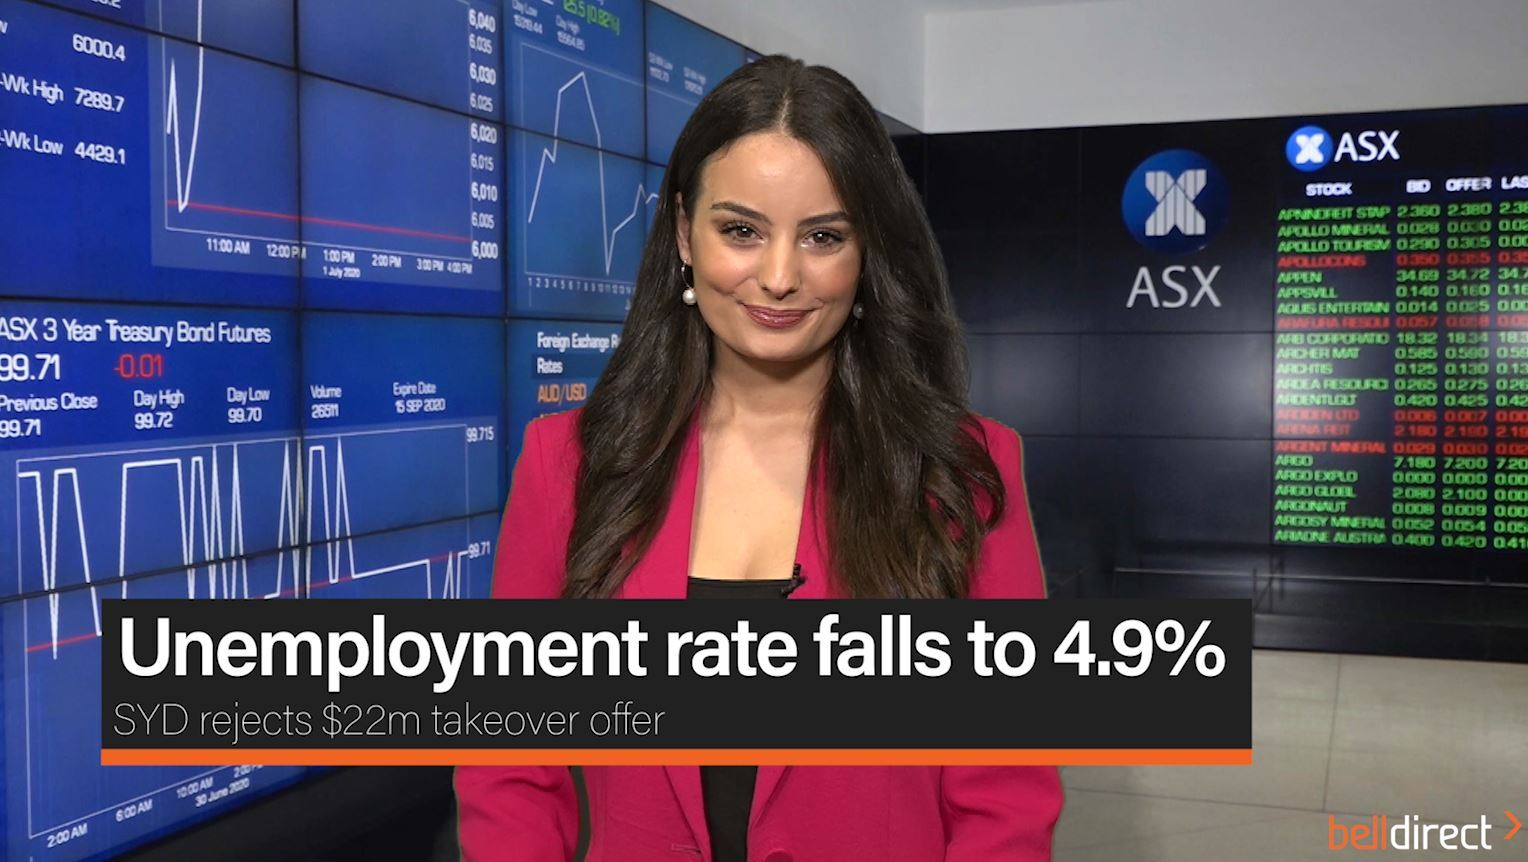 Unemployment rate falls to 4.9%